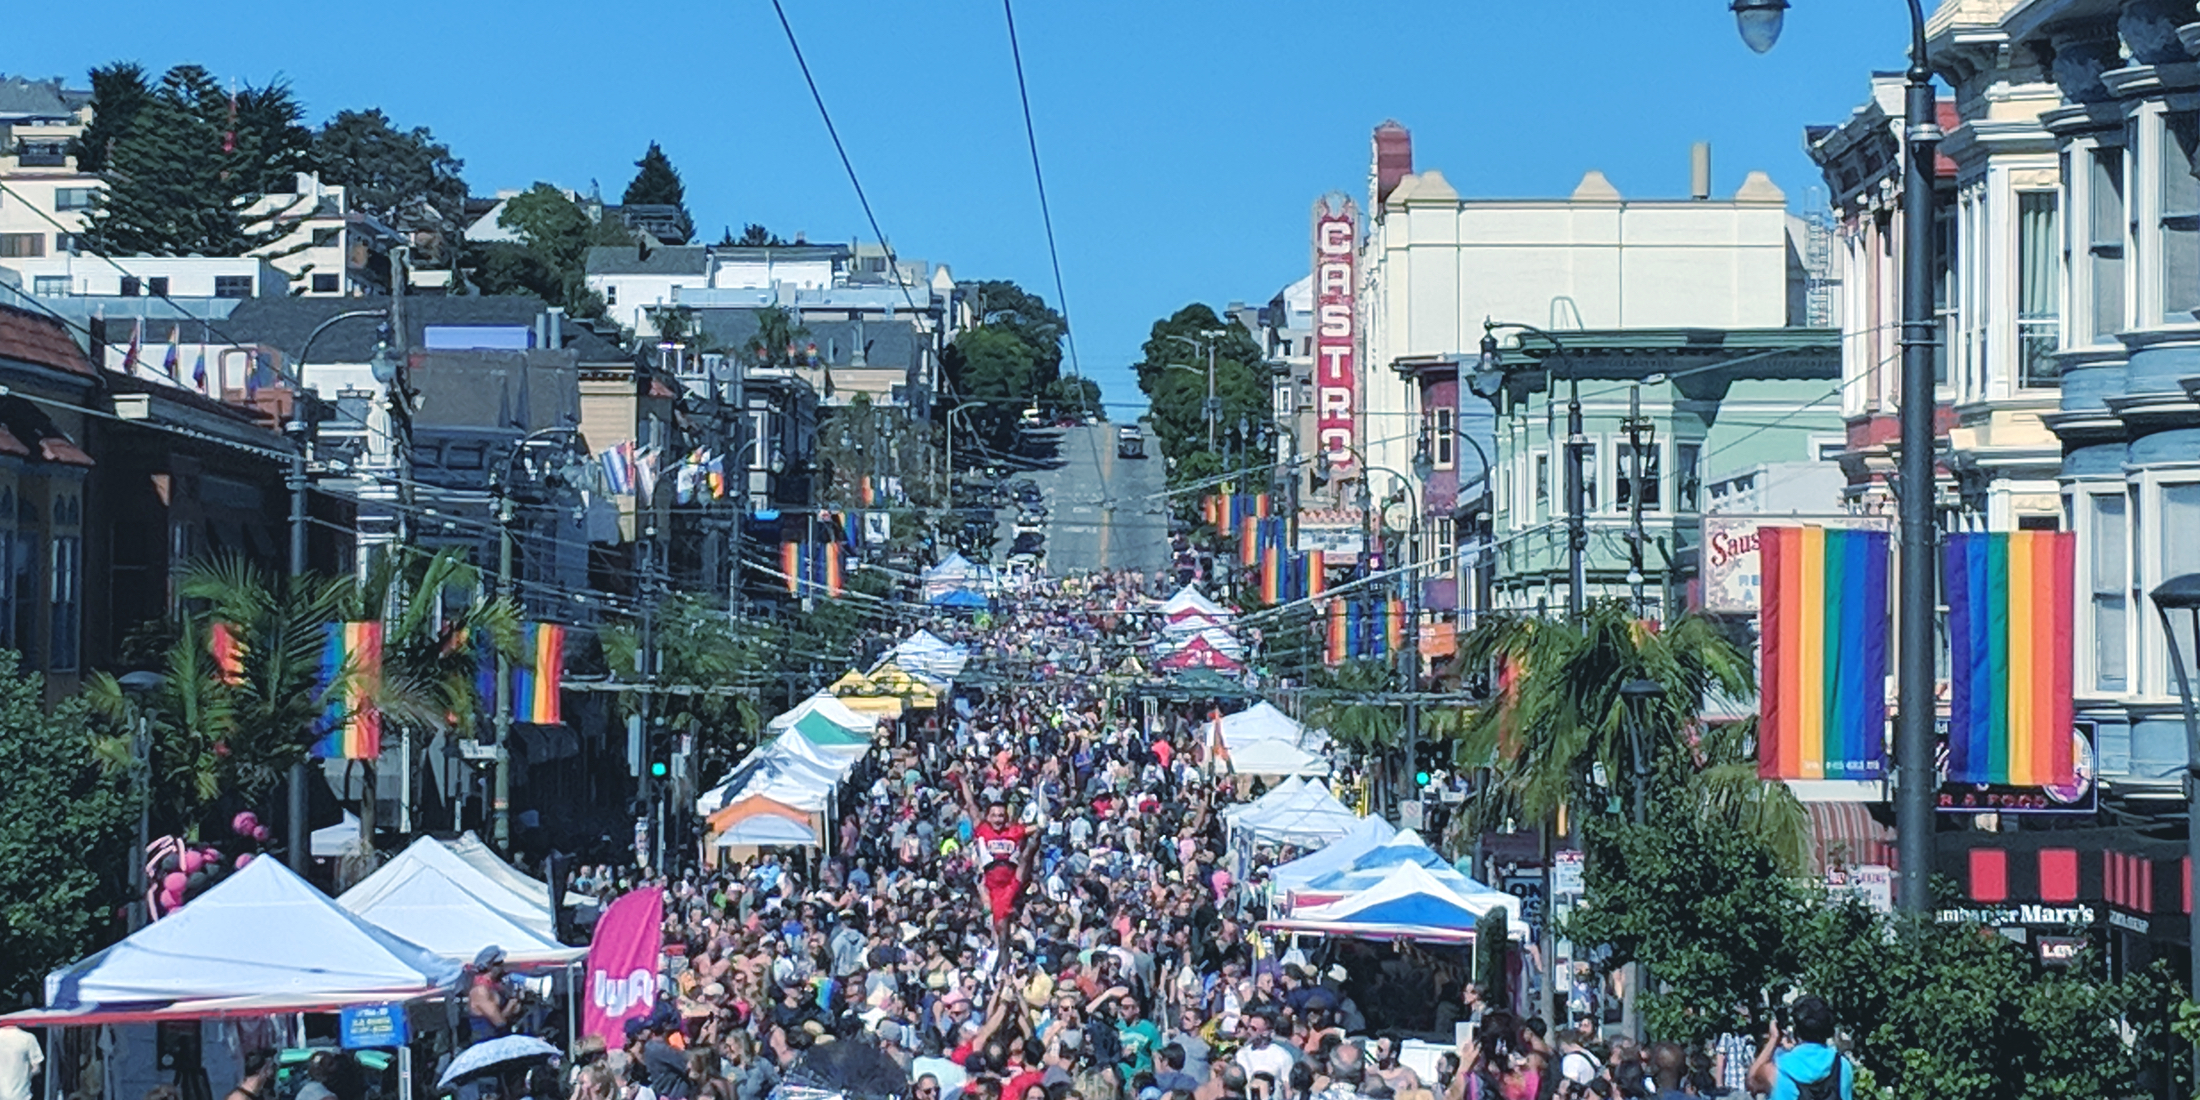 45th annual Castro Street Fair